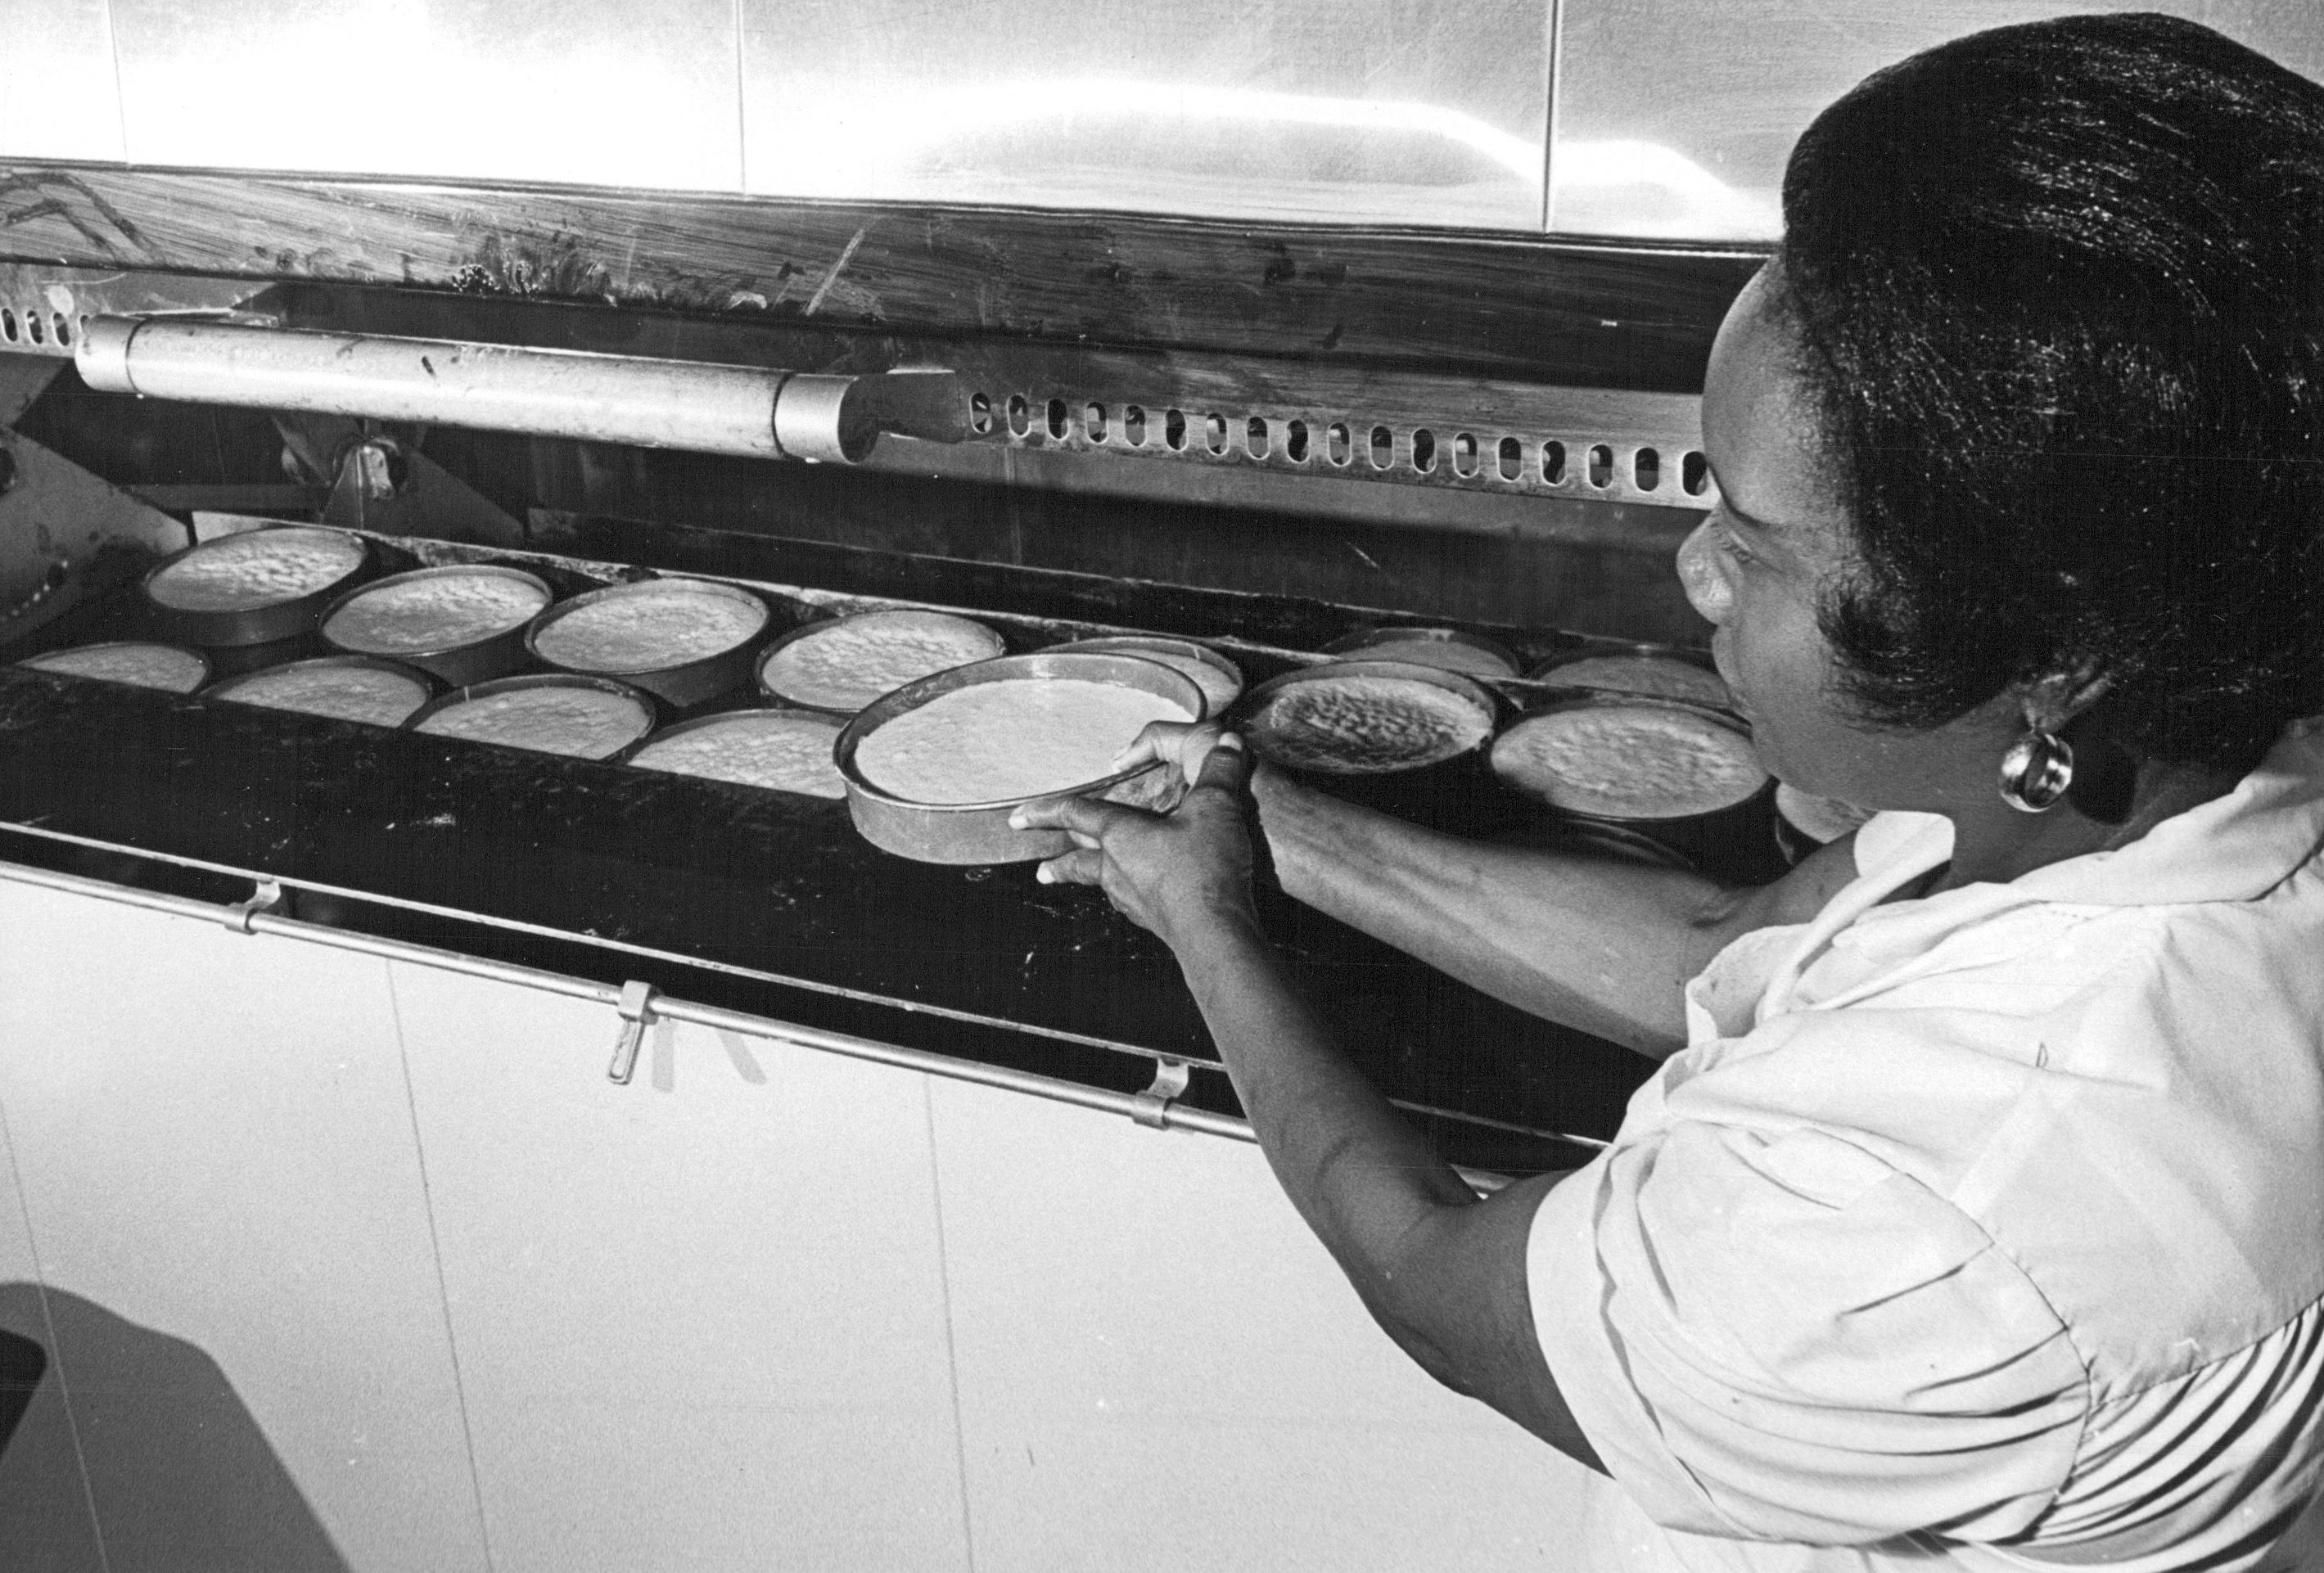 A woman bakes Boston cream pies in 1965. Photo By Dave Buresh / The Denver Post via Getty Images.